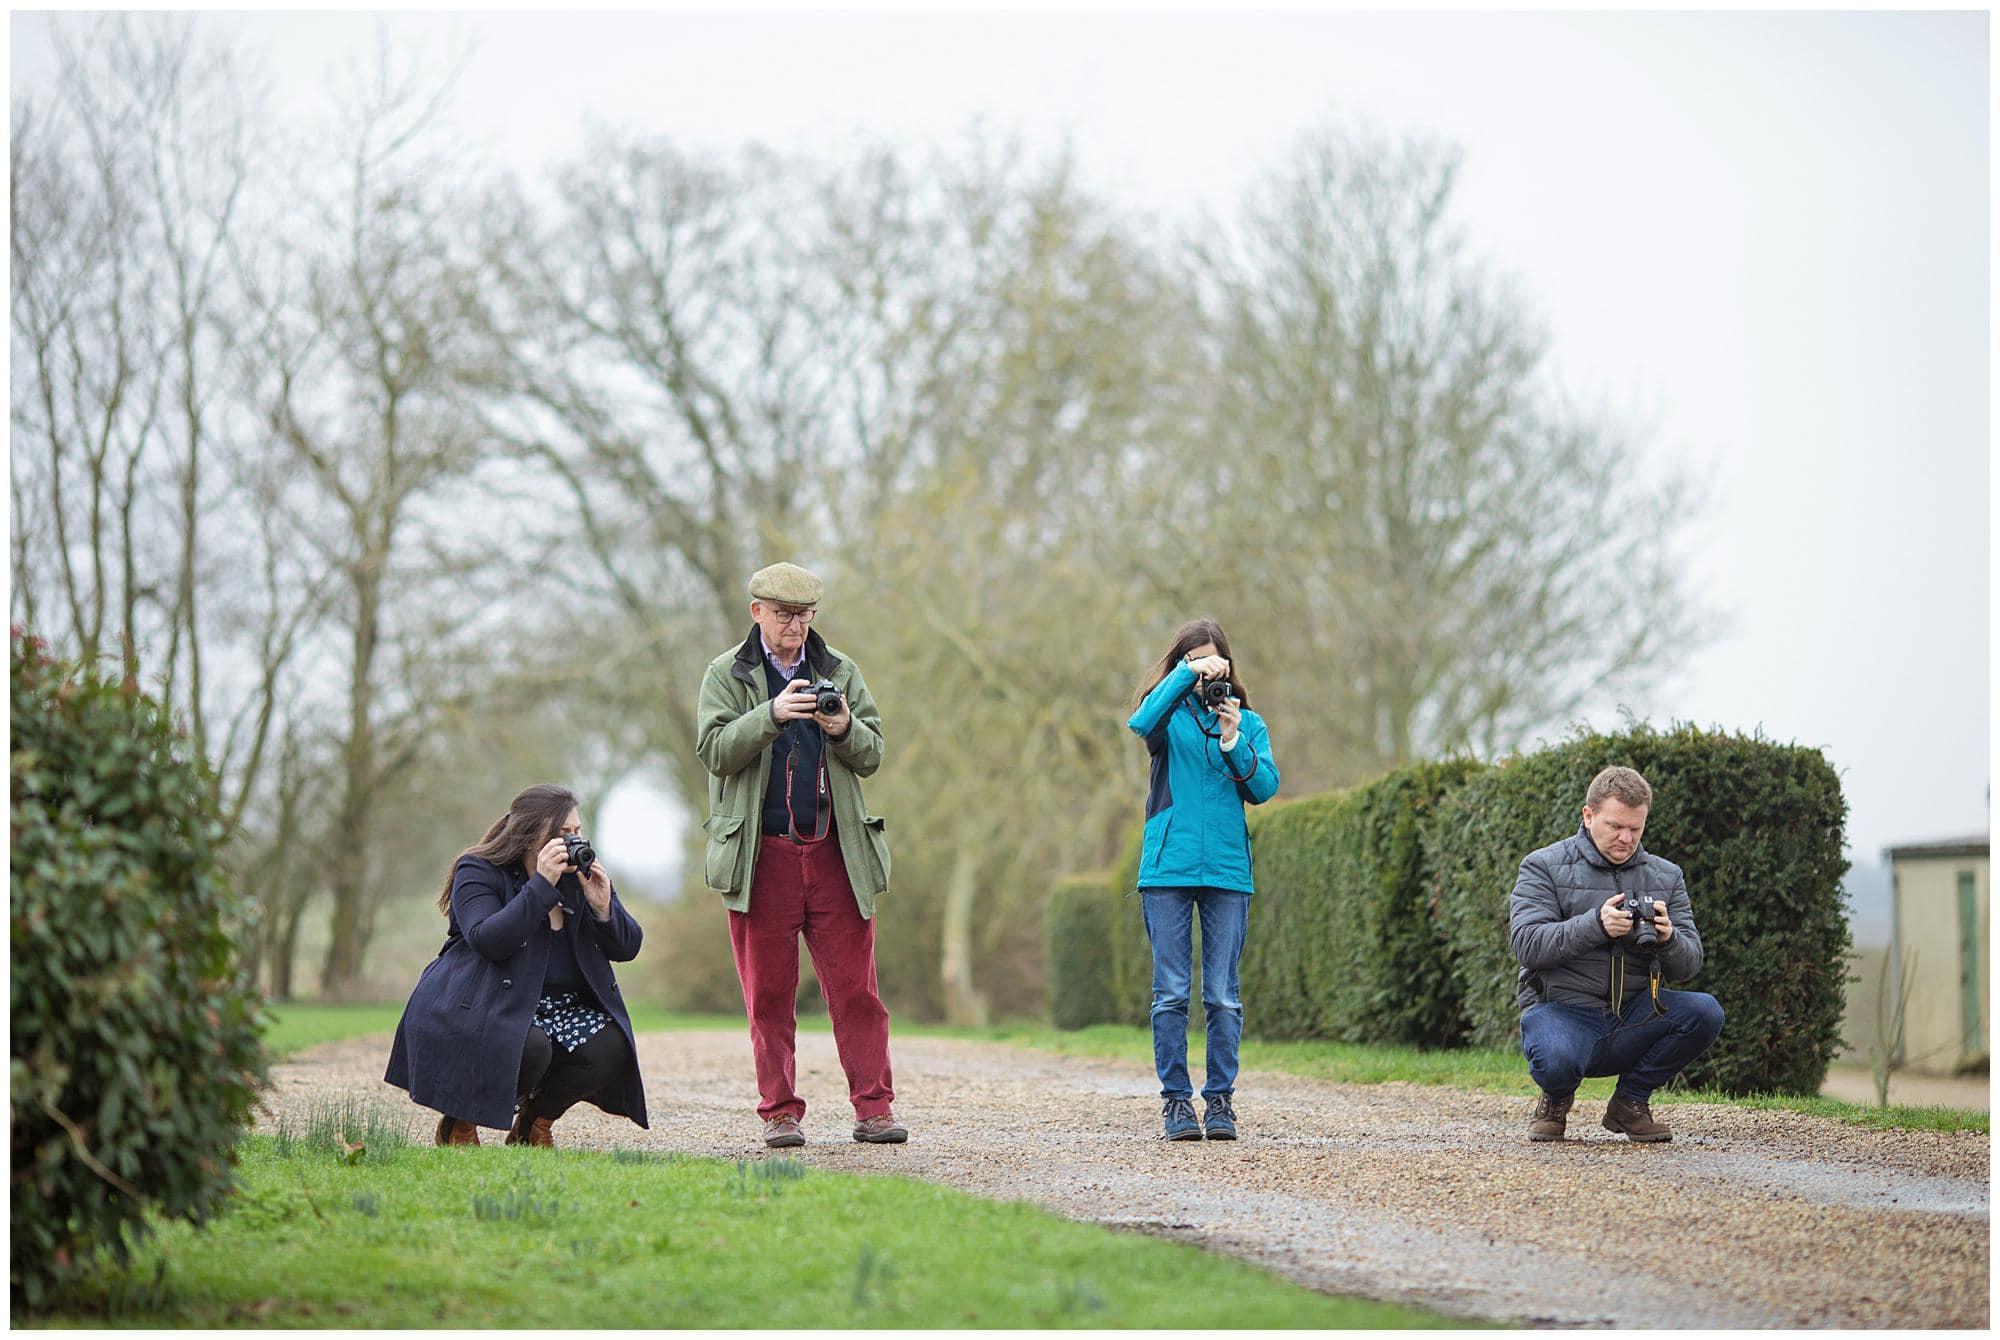 Four Photographers take photos with their camera's during a Beginners Photography Workshop in Stoke By Clare, Suffolk